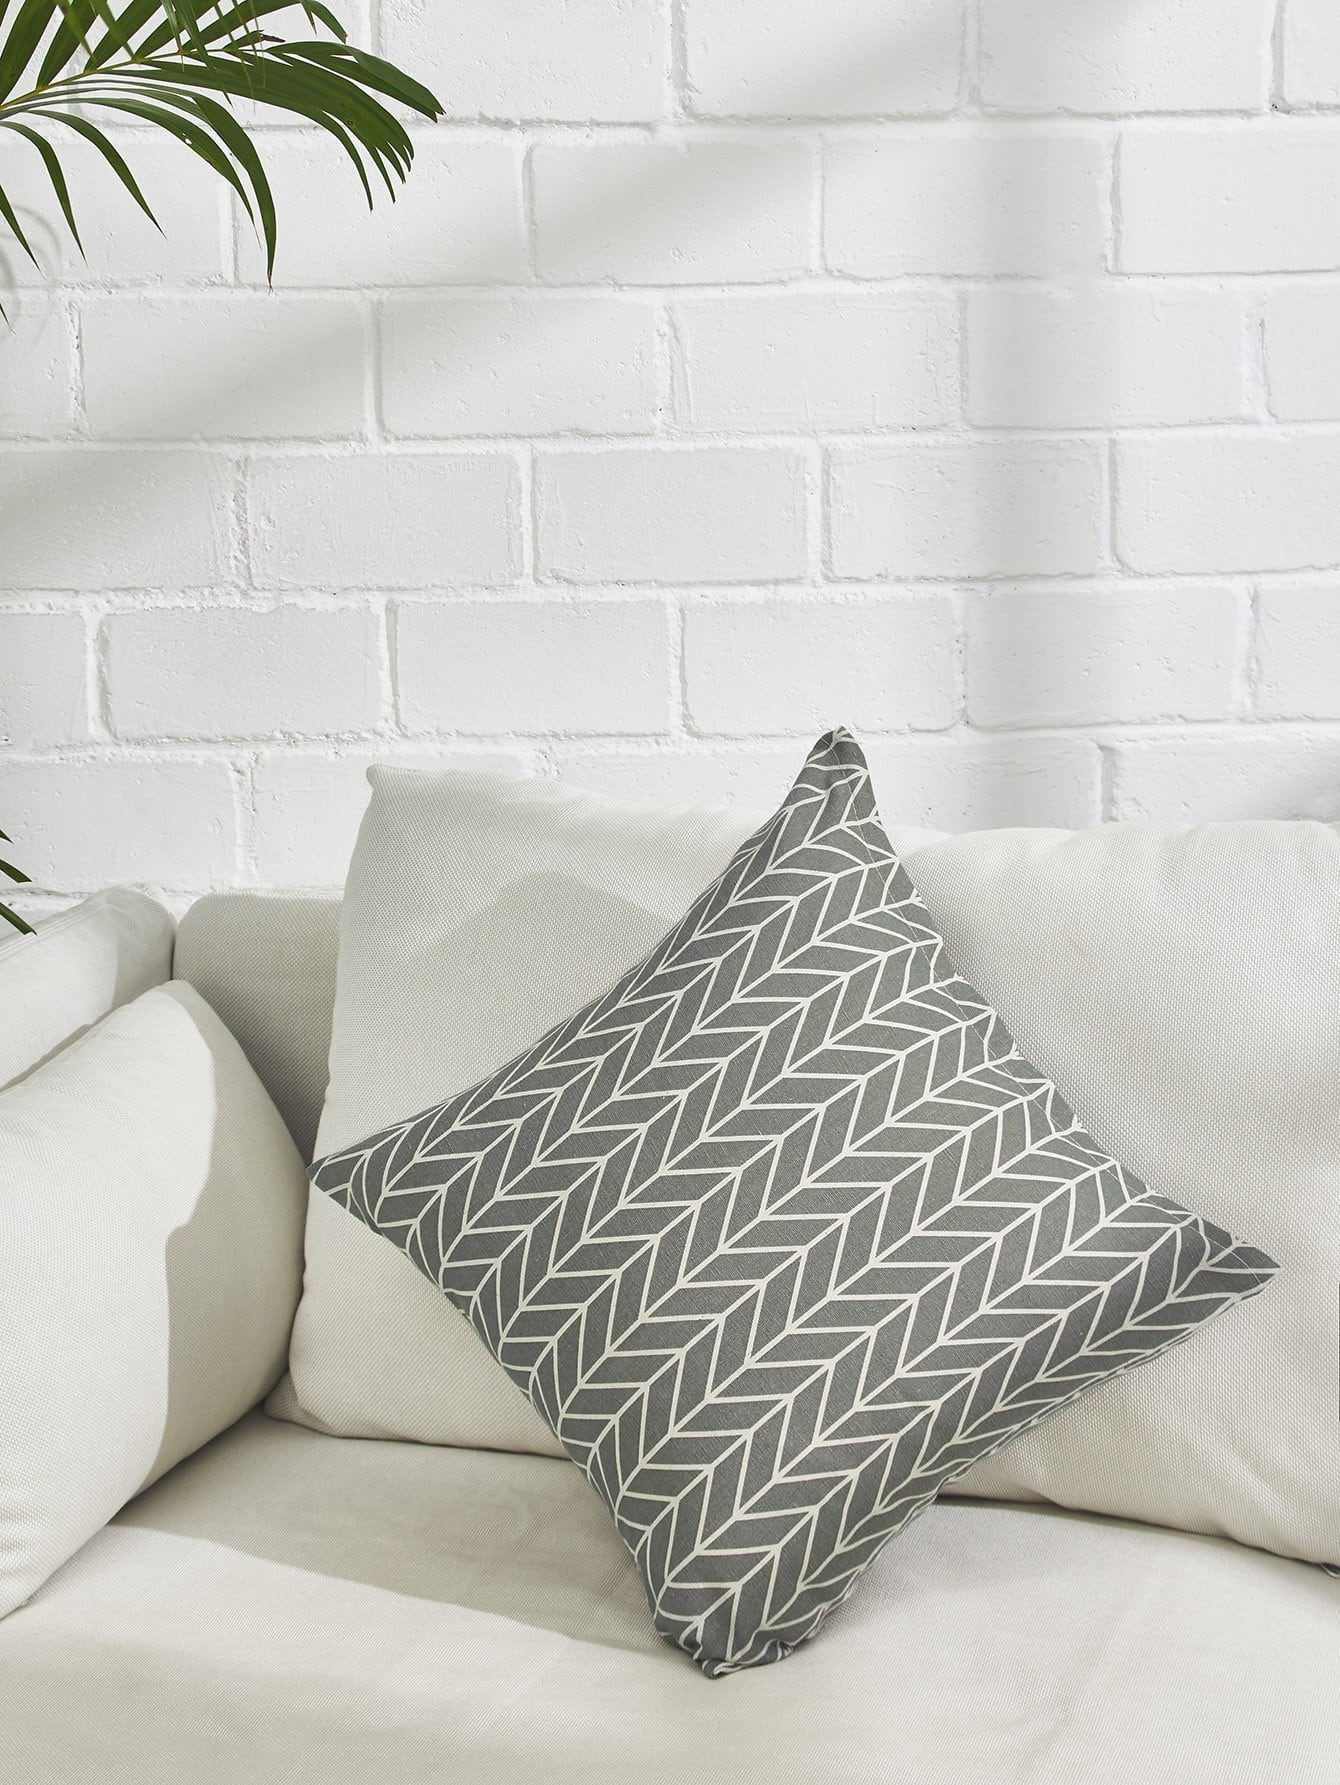 Allover Chevron Print Pillowcase Cover allover grid print pillowcase cover